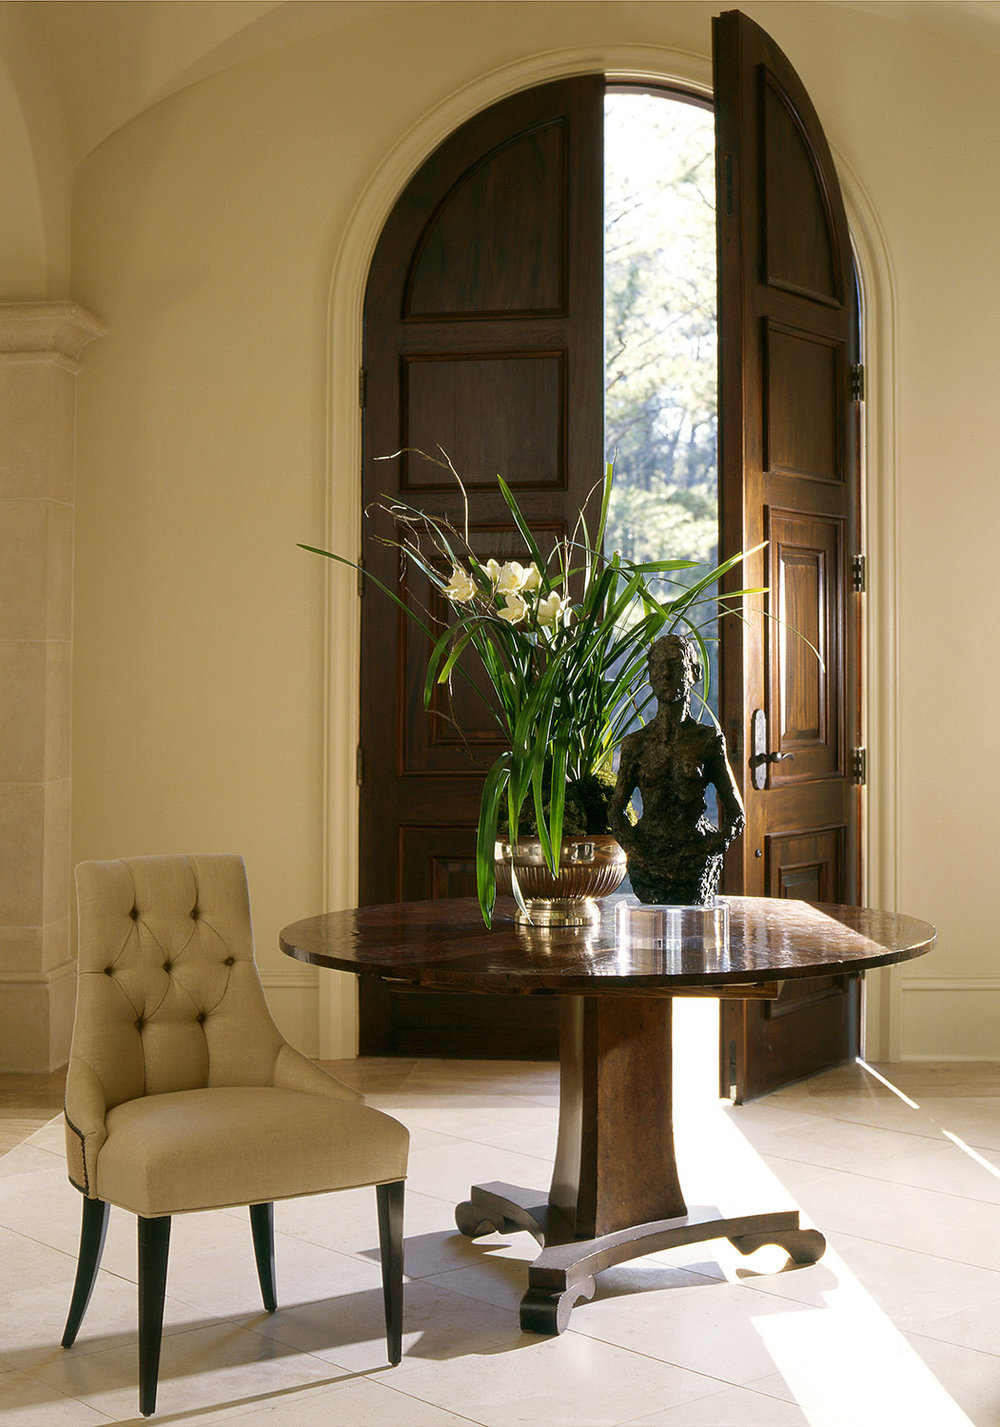 ROBERT BROWN INTERIORS THREE-FOOTED PEDESTAL TABLE [STYLE: CUSTOM W1007]